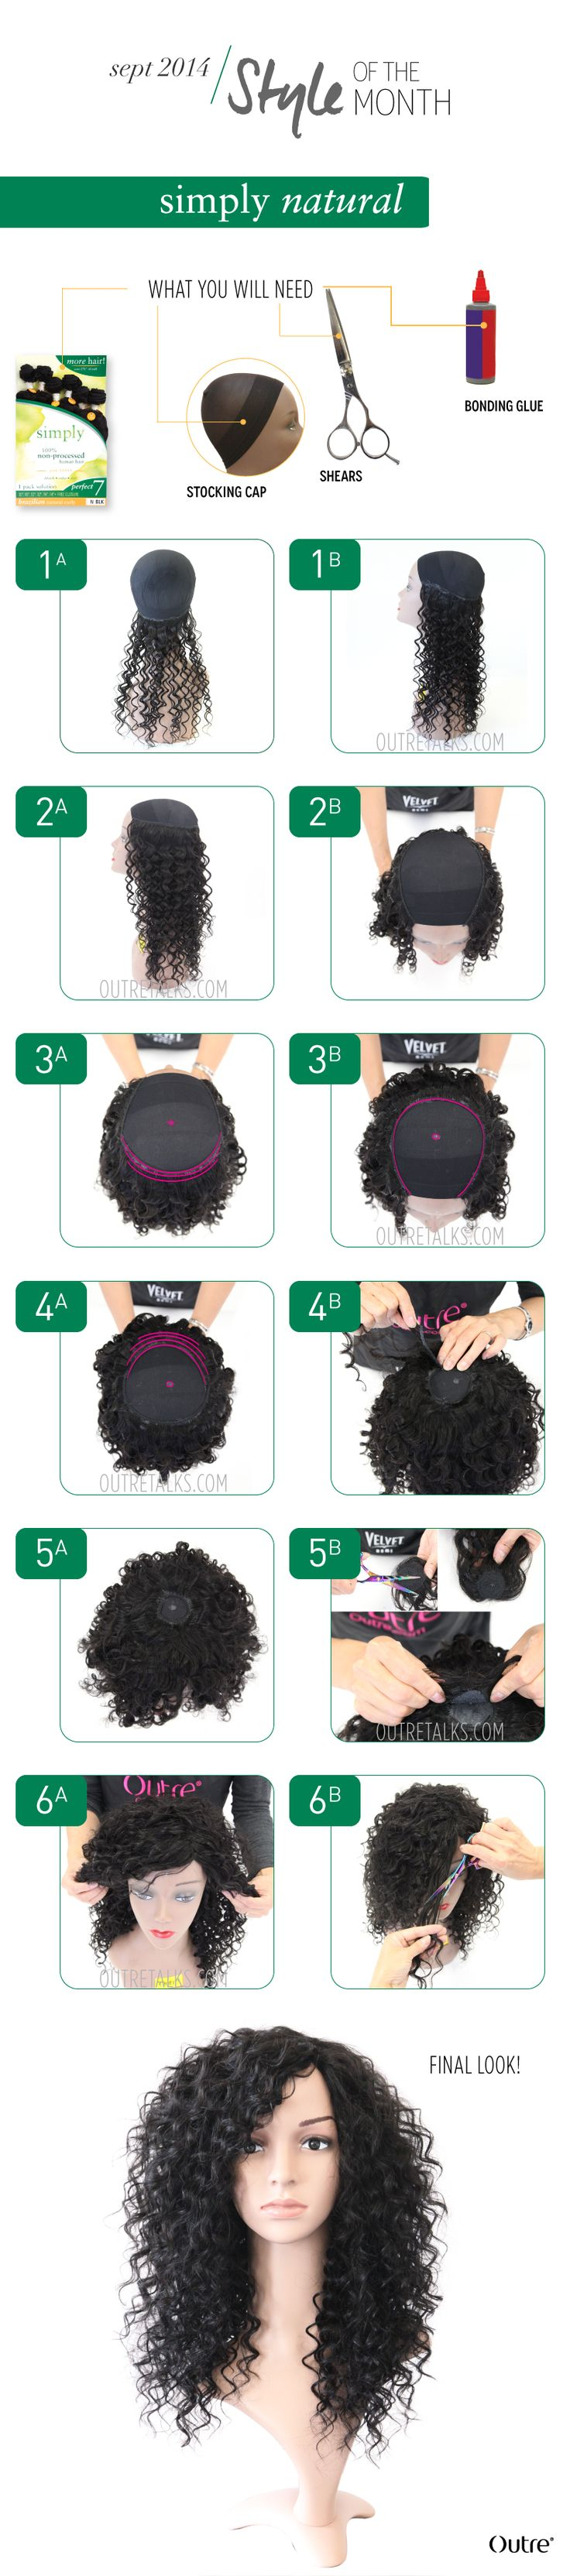 how to create a full cap wig, stocking cap wig, natural curly, full and gorgeous